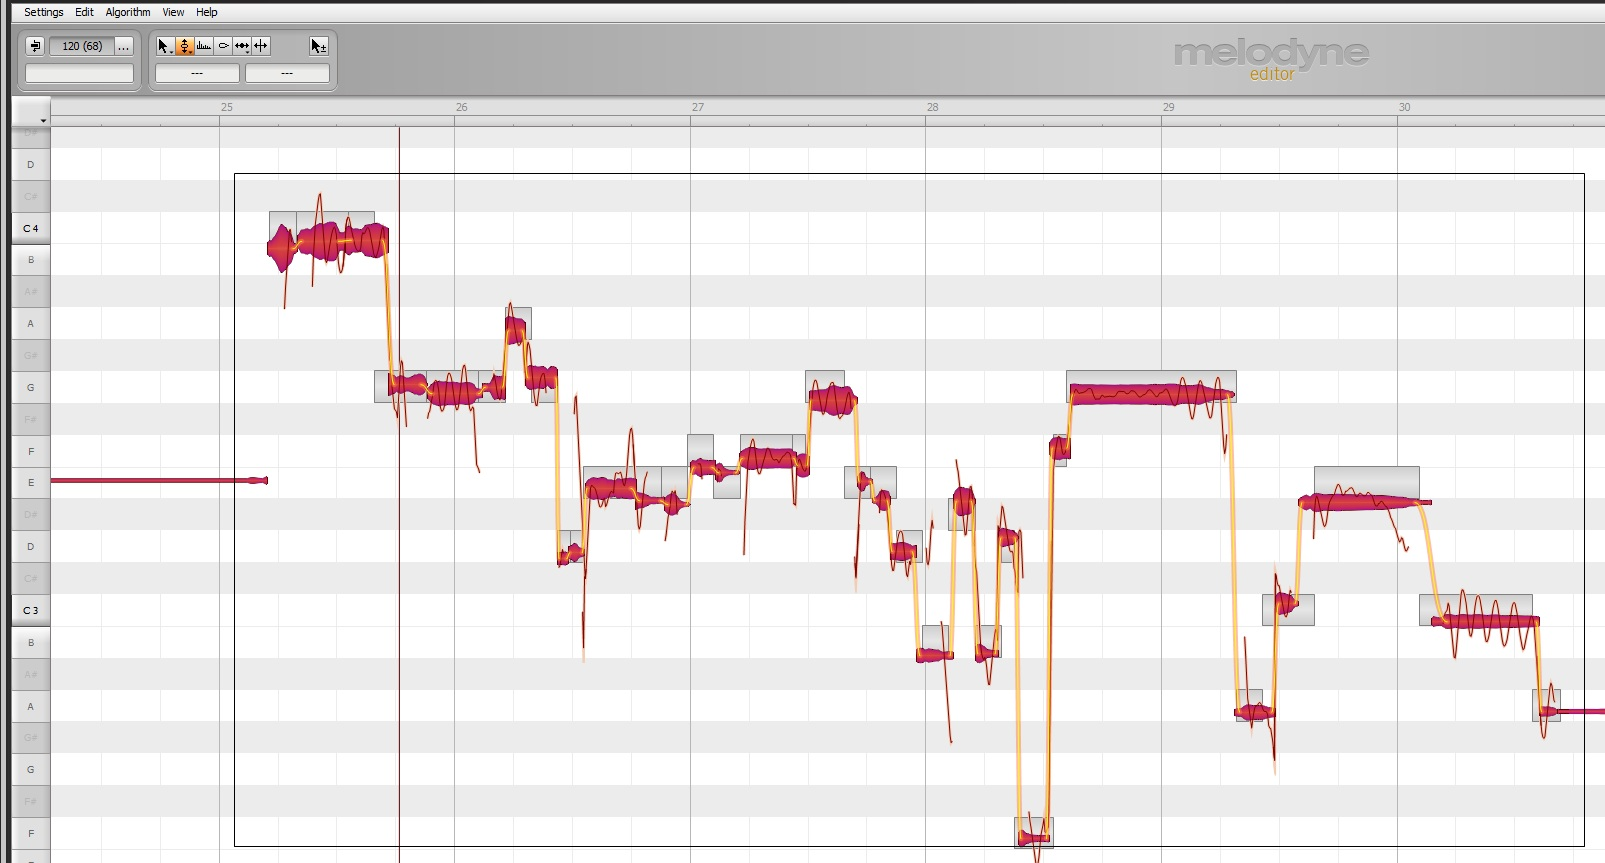 Make Your Voice Sound Like Daft Punk with Melodyne Editor